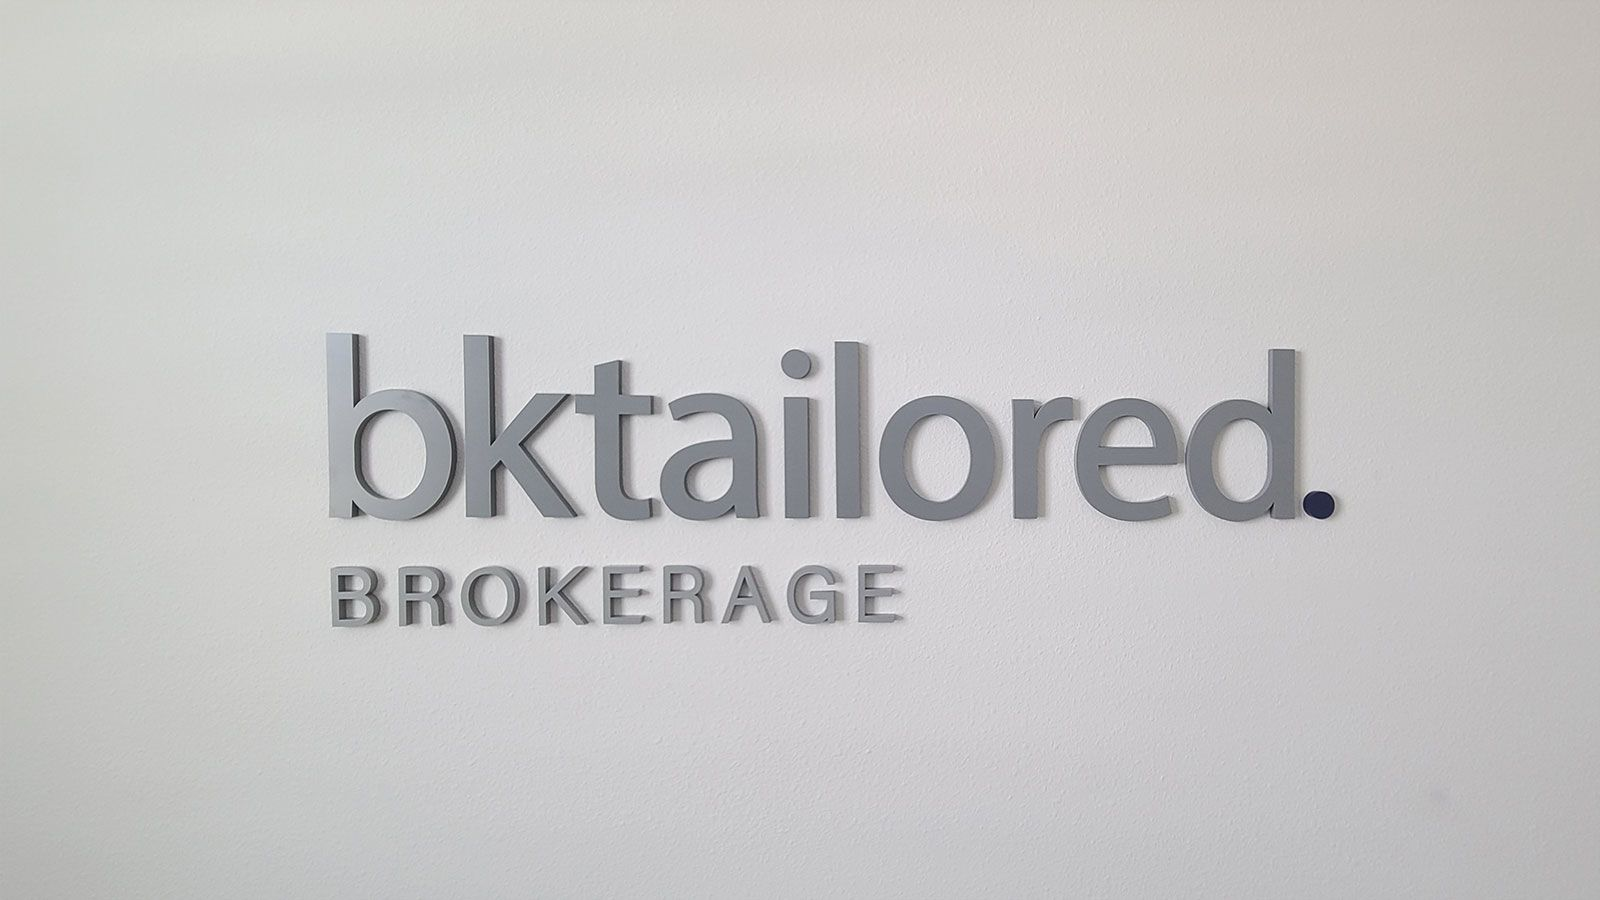 Bktailored acrylic 3D letters